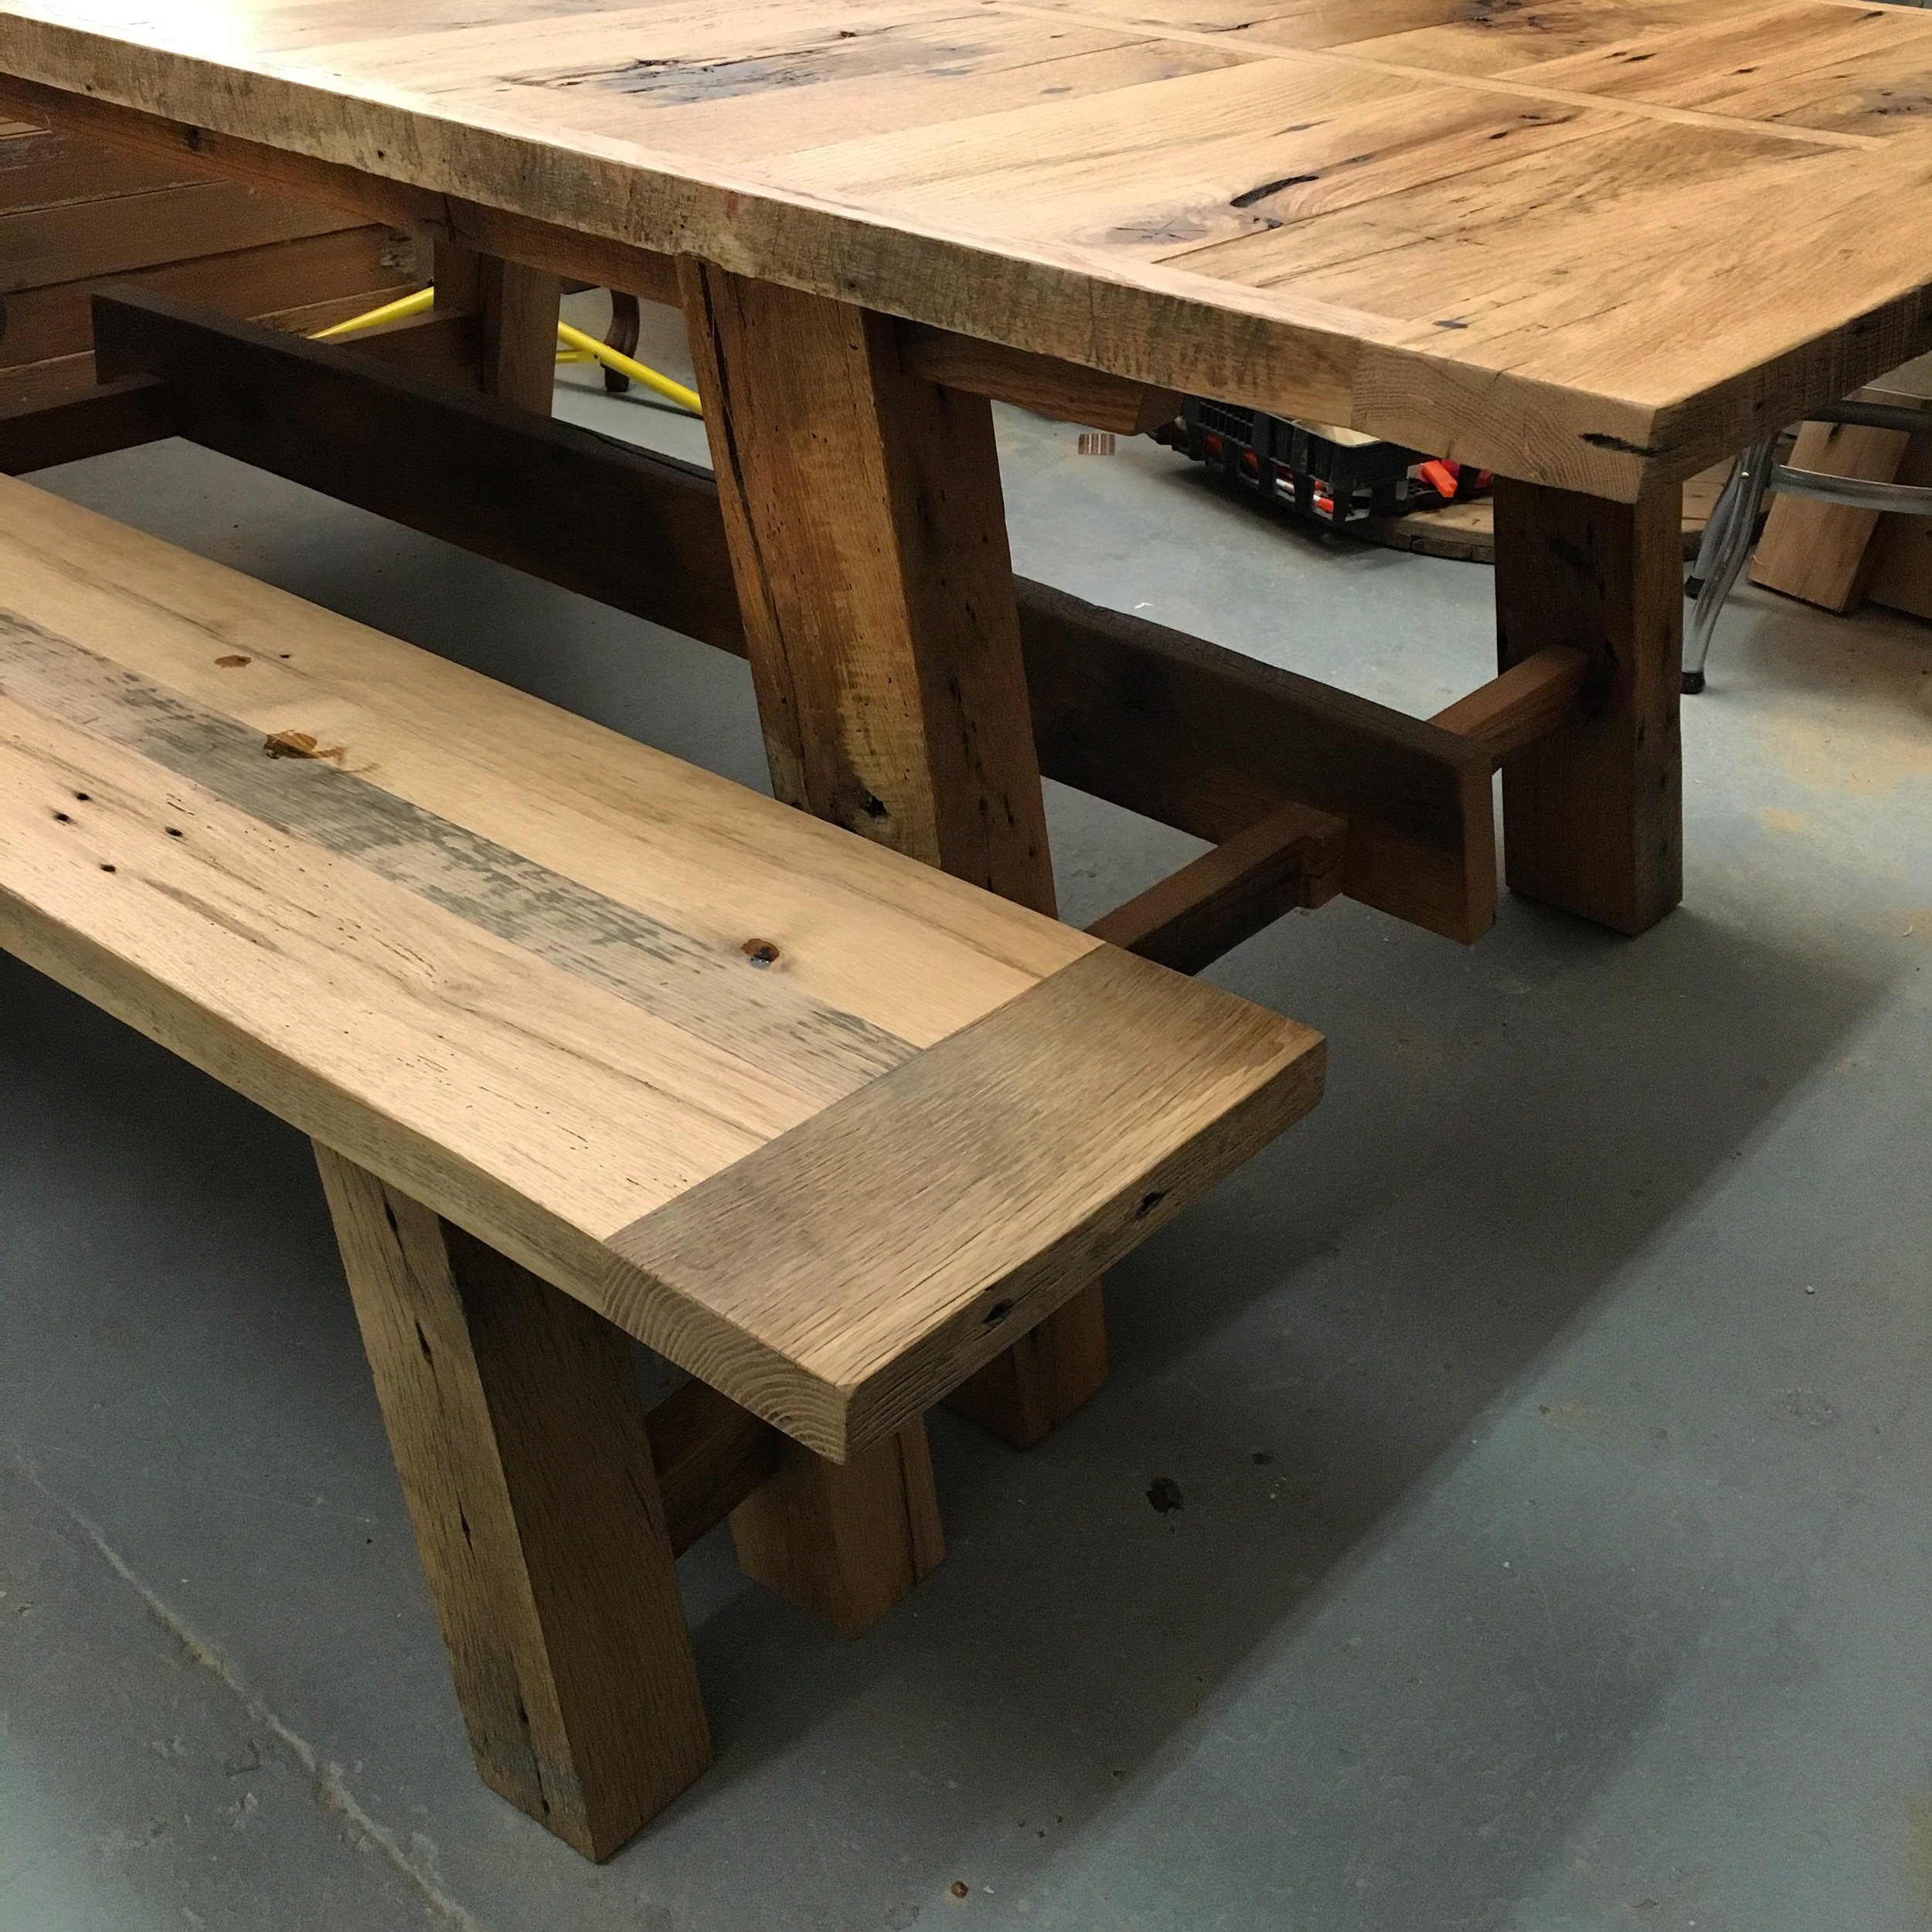 Reclaimed white oak table and bench